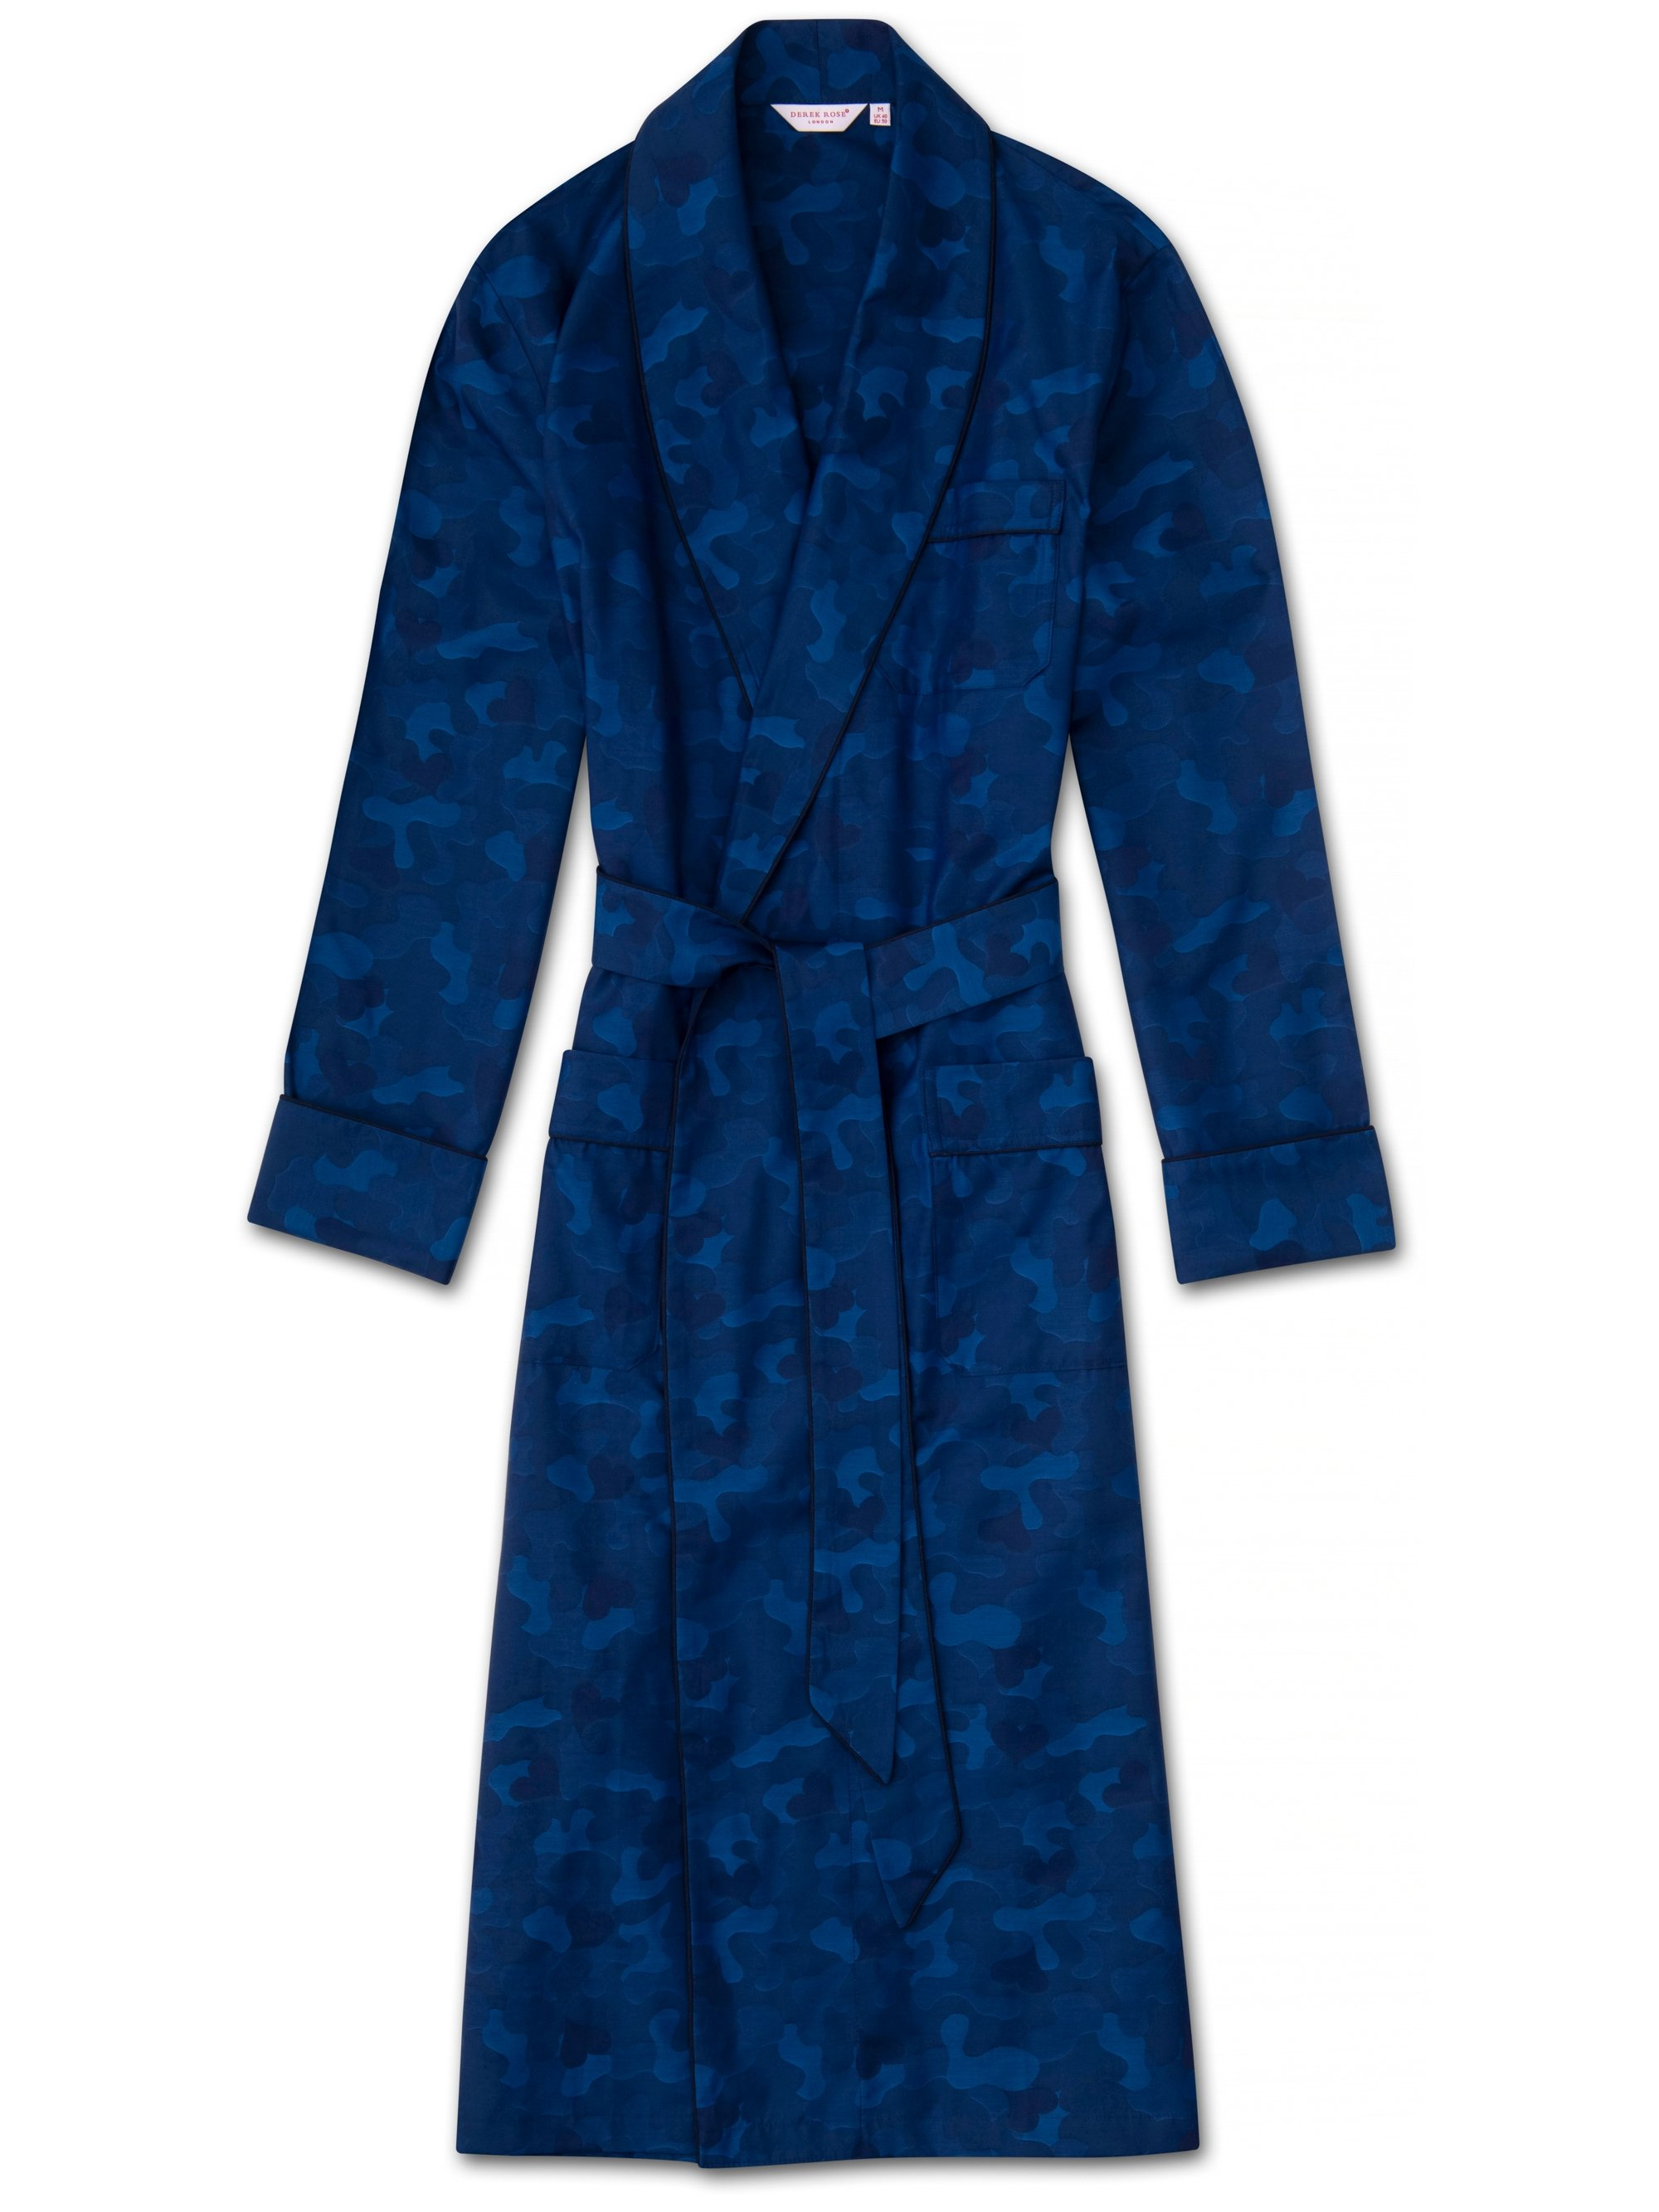 Men's Piped Dressing Gown Paris 18 Cotton Jacquard Navy